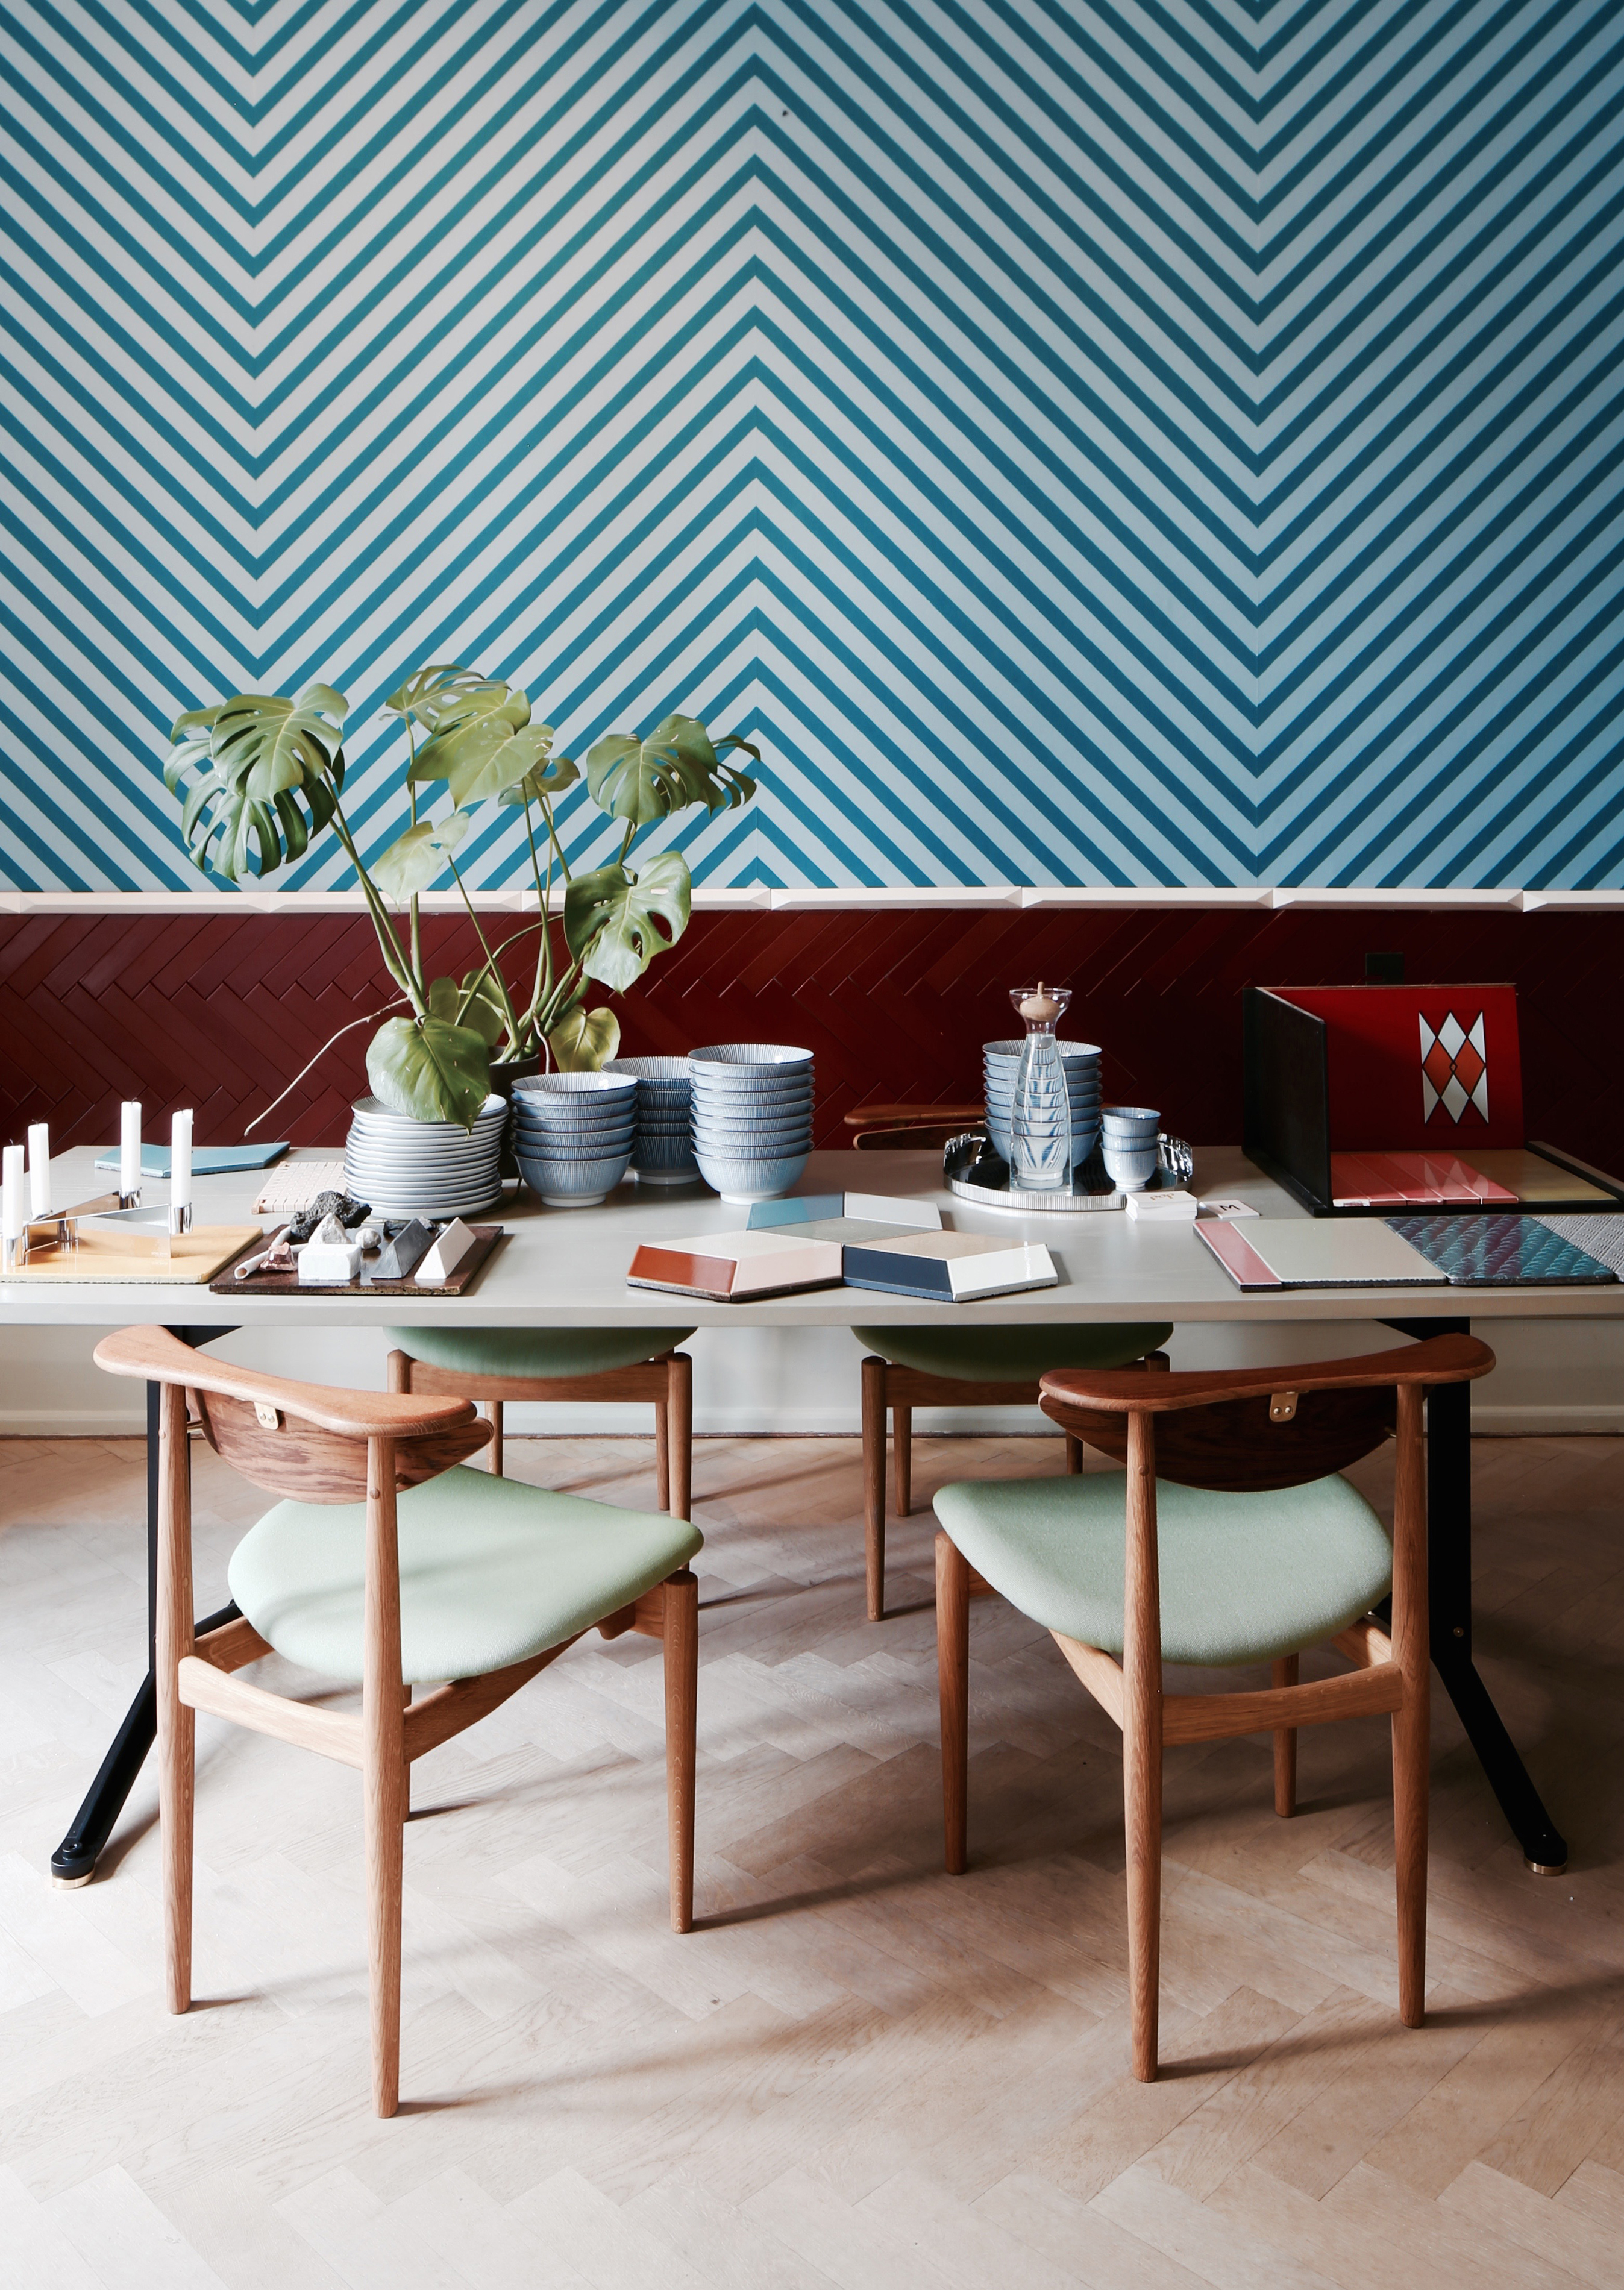 GALLERY: Onecollection Presents A Different View Of Iconic Finn Juhl Designs